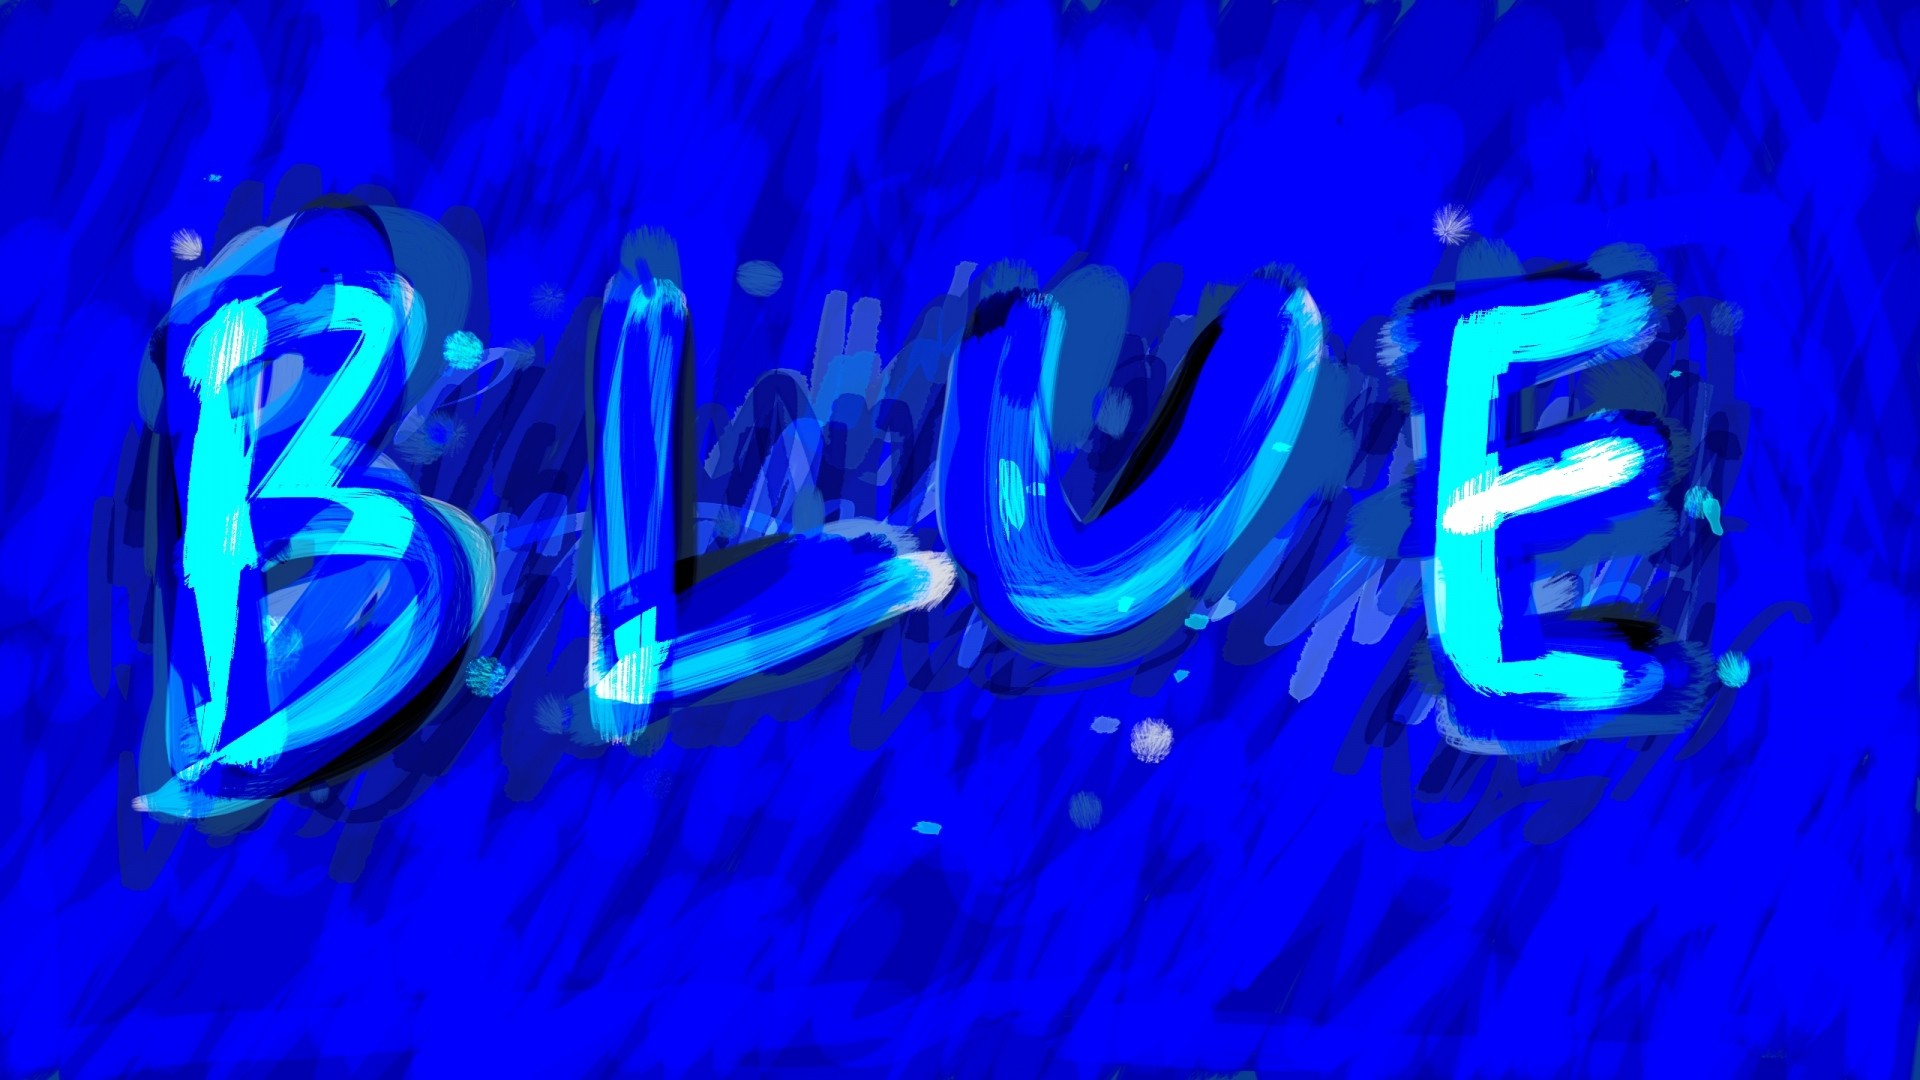 Download Wallpaper Blue, Label, Background, Paint Full HD .